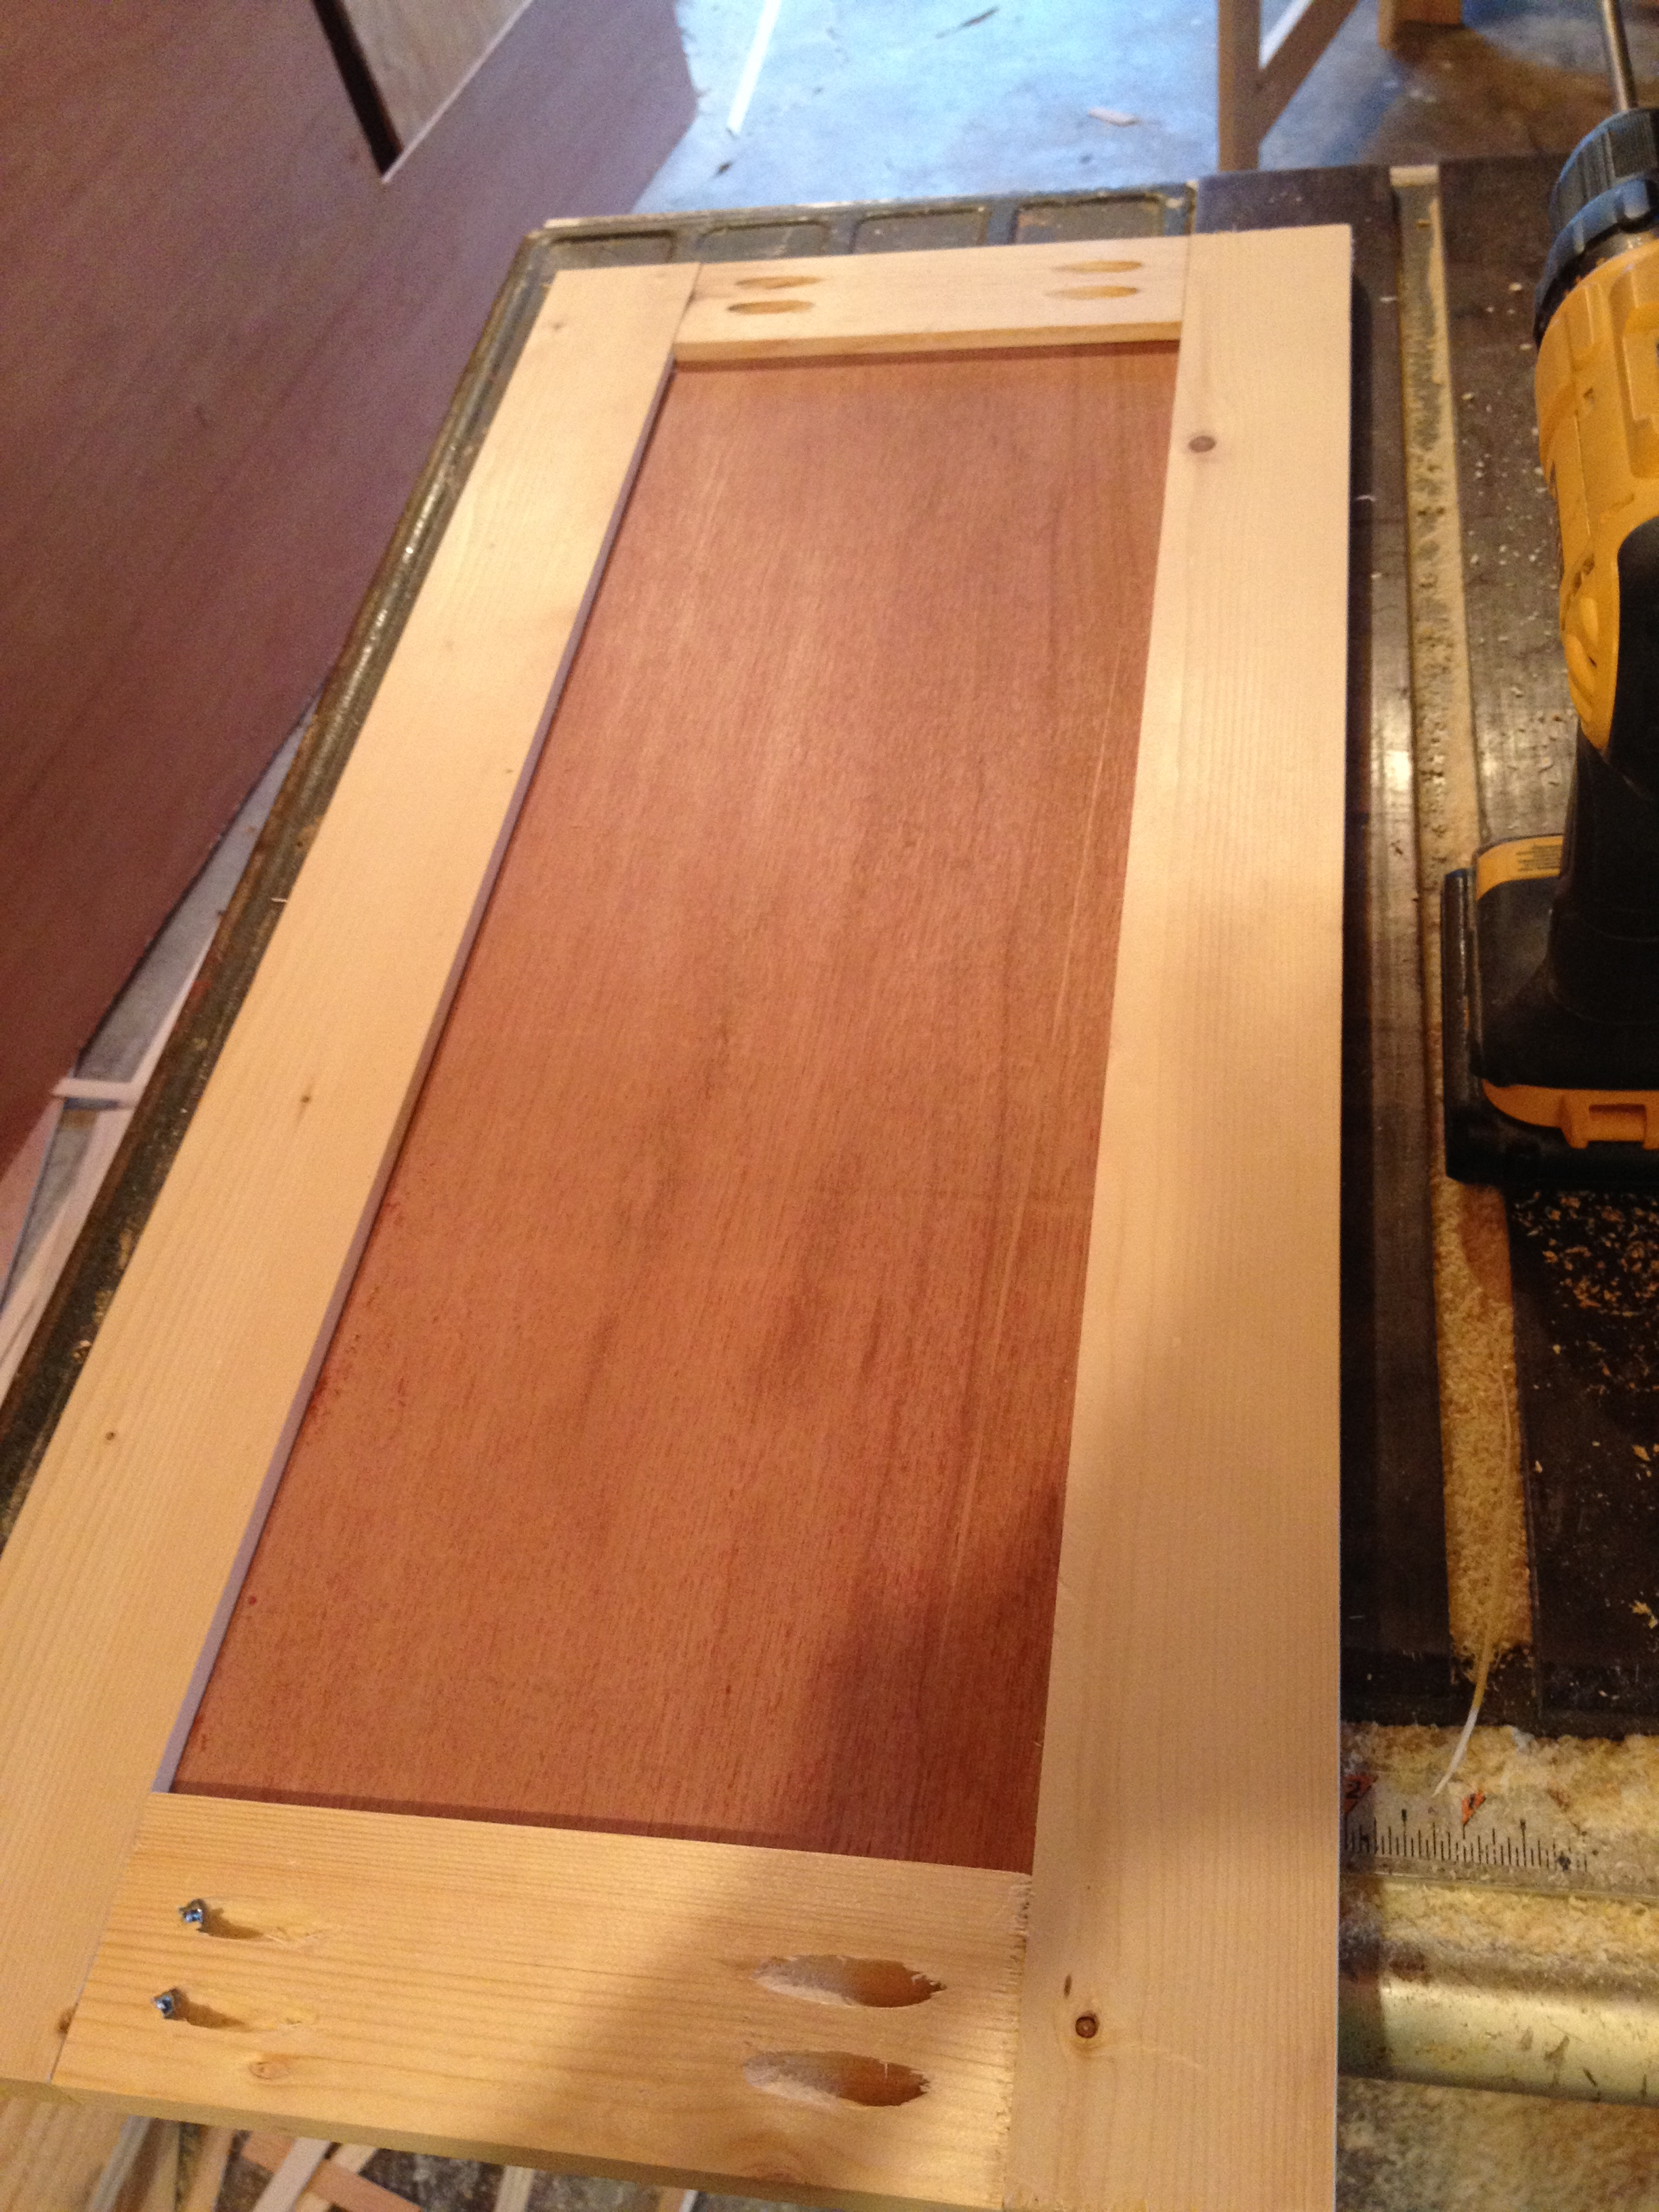 The Making of Shaker Cabinet Doors